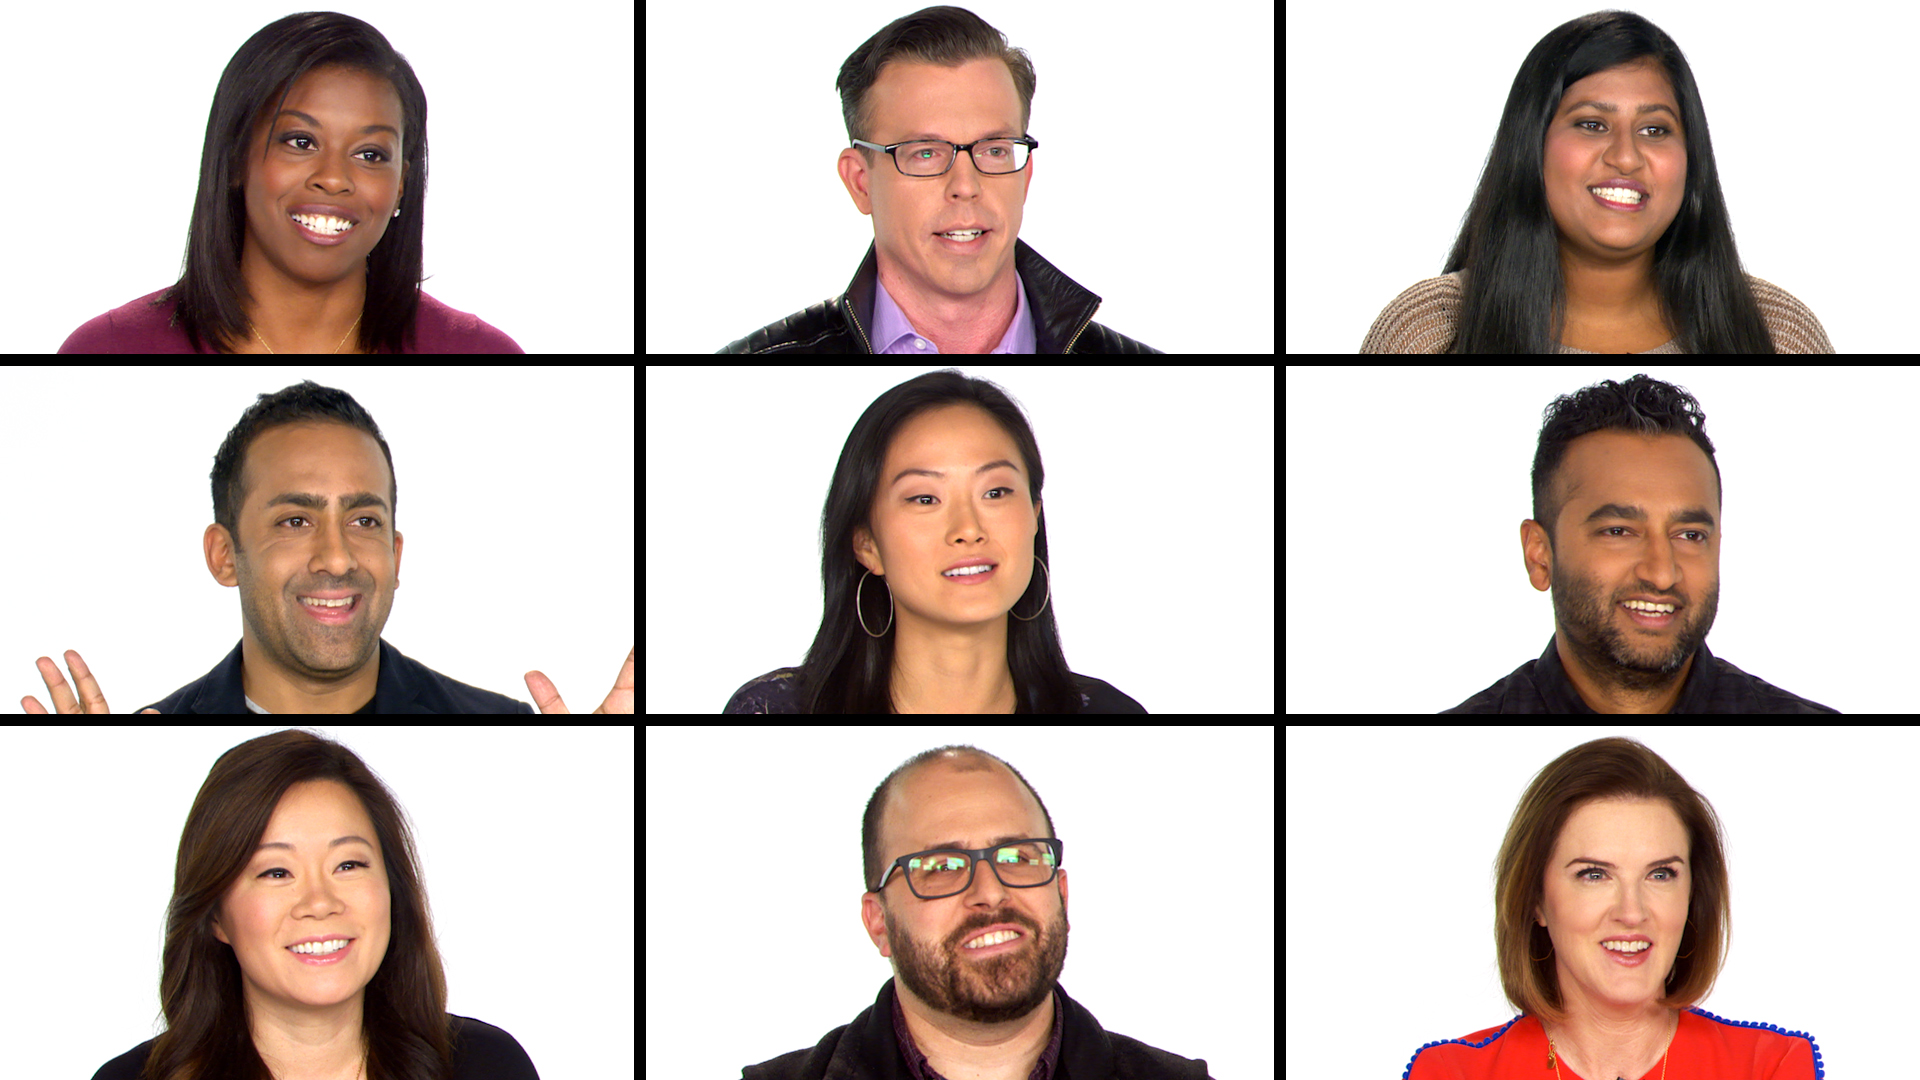 Yahoo Finance reporters talk honestly about their money goals for 2018